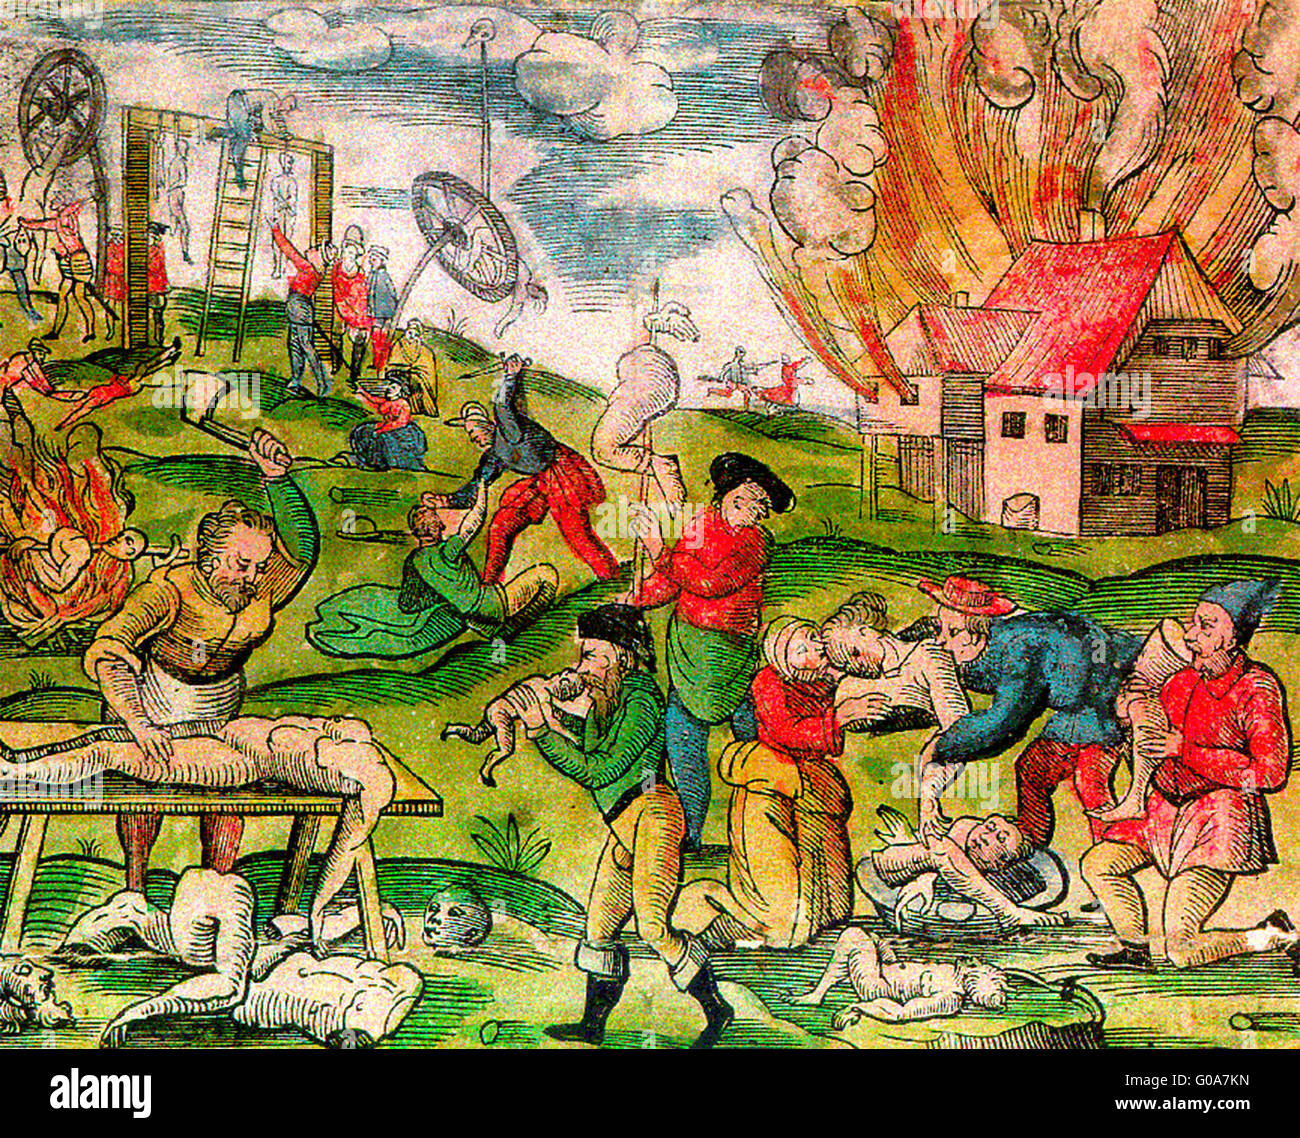 cannibalism Cannibalism in Lithuania during Russian invasion in 1571, German plate.  Cannibalism in Muscovy and